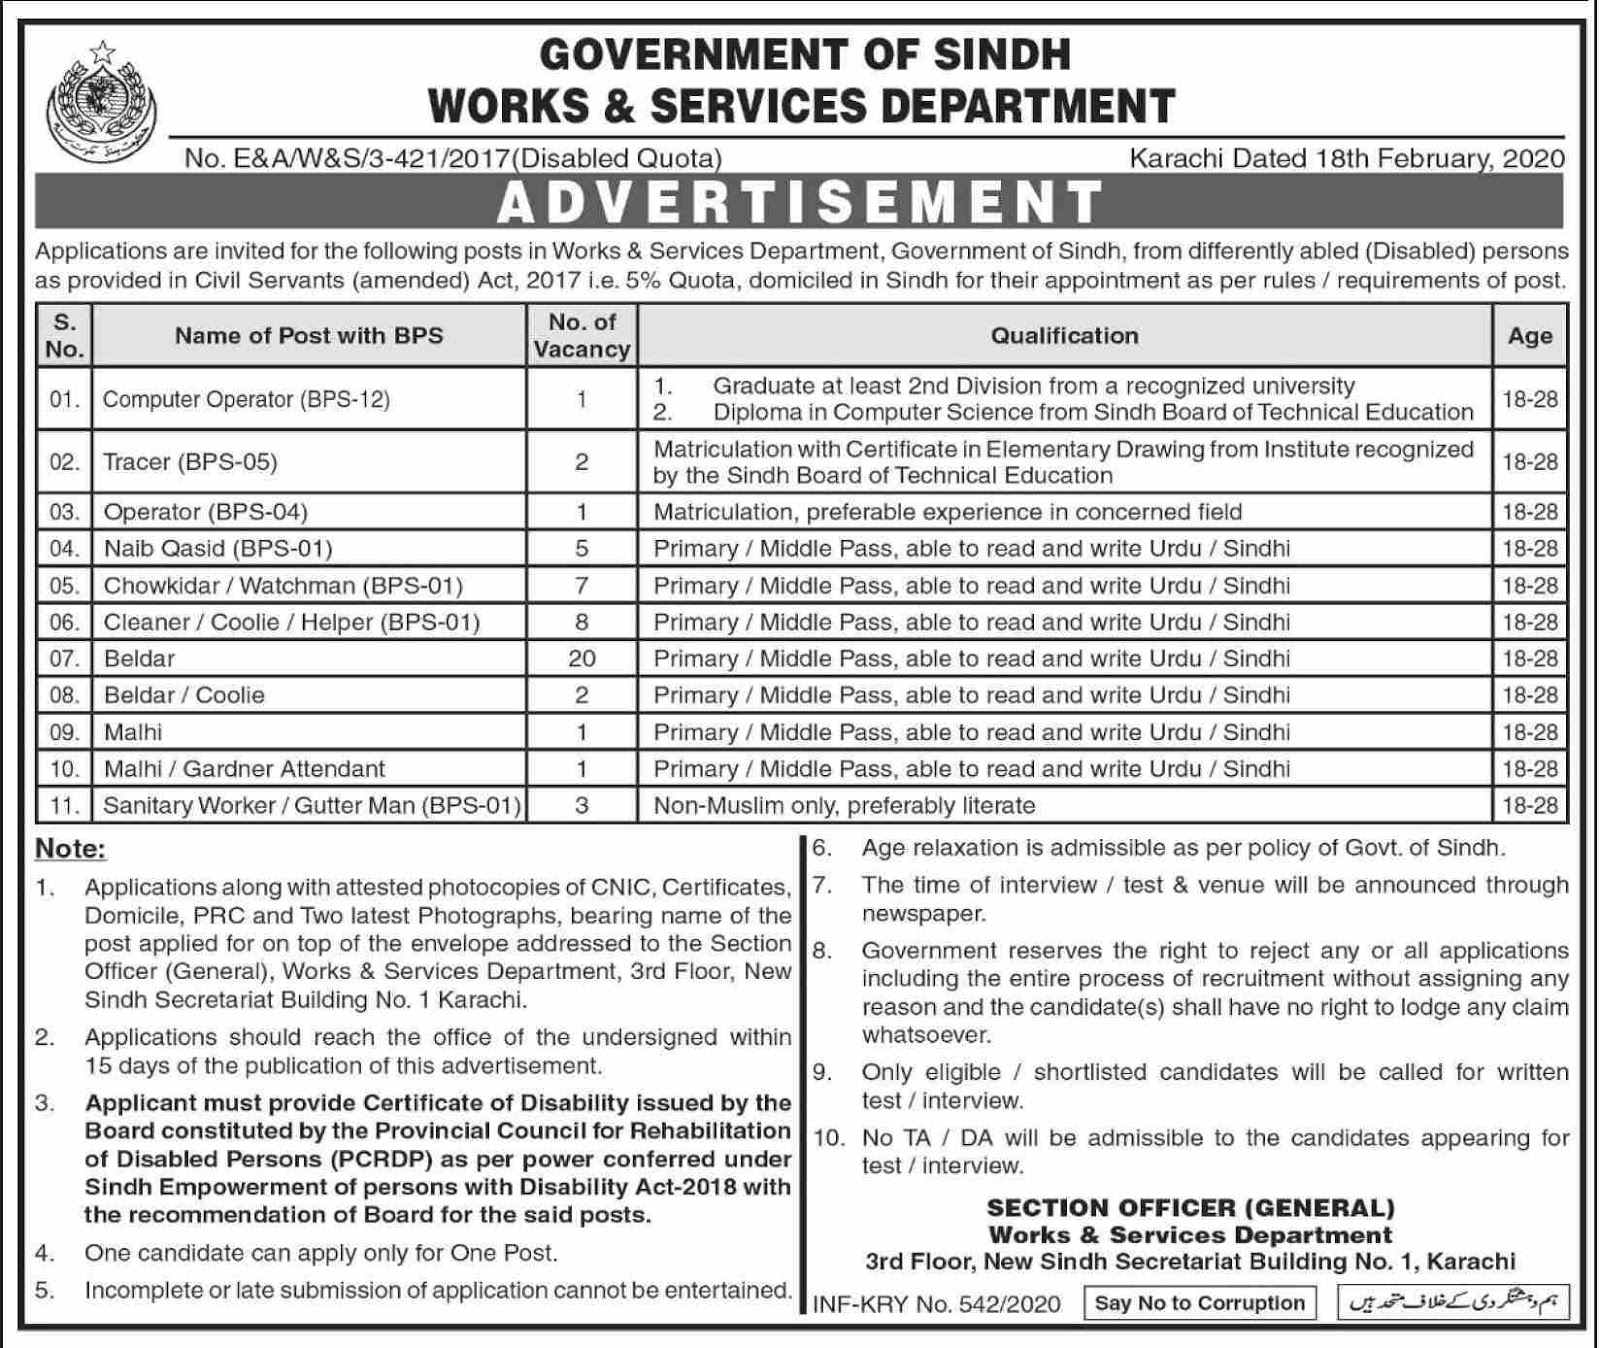 Works And Services Department Govt of Sindh Jobs For Tracer, Computer Operator